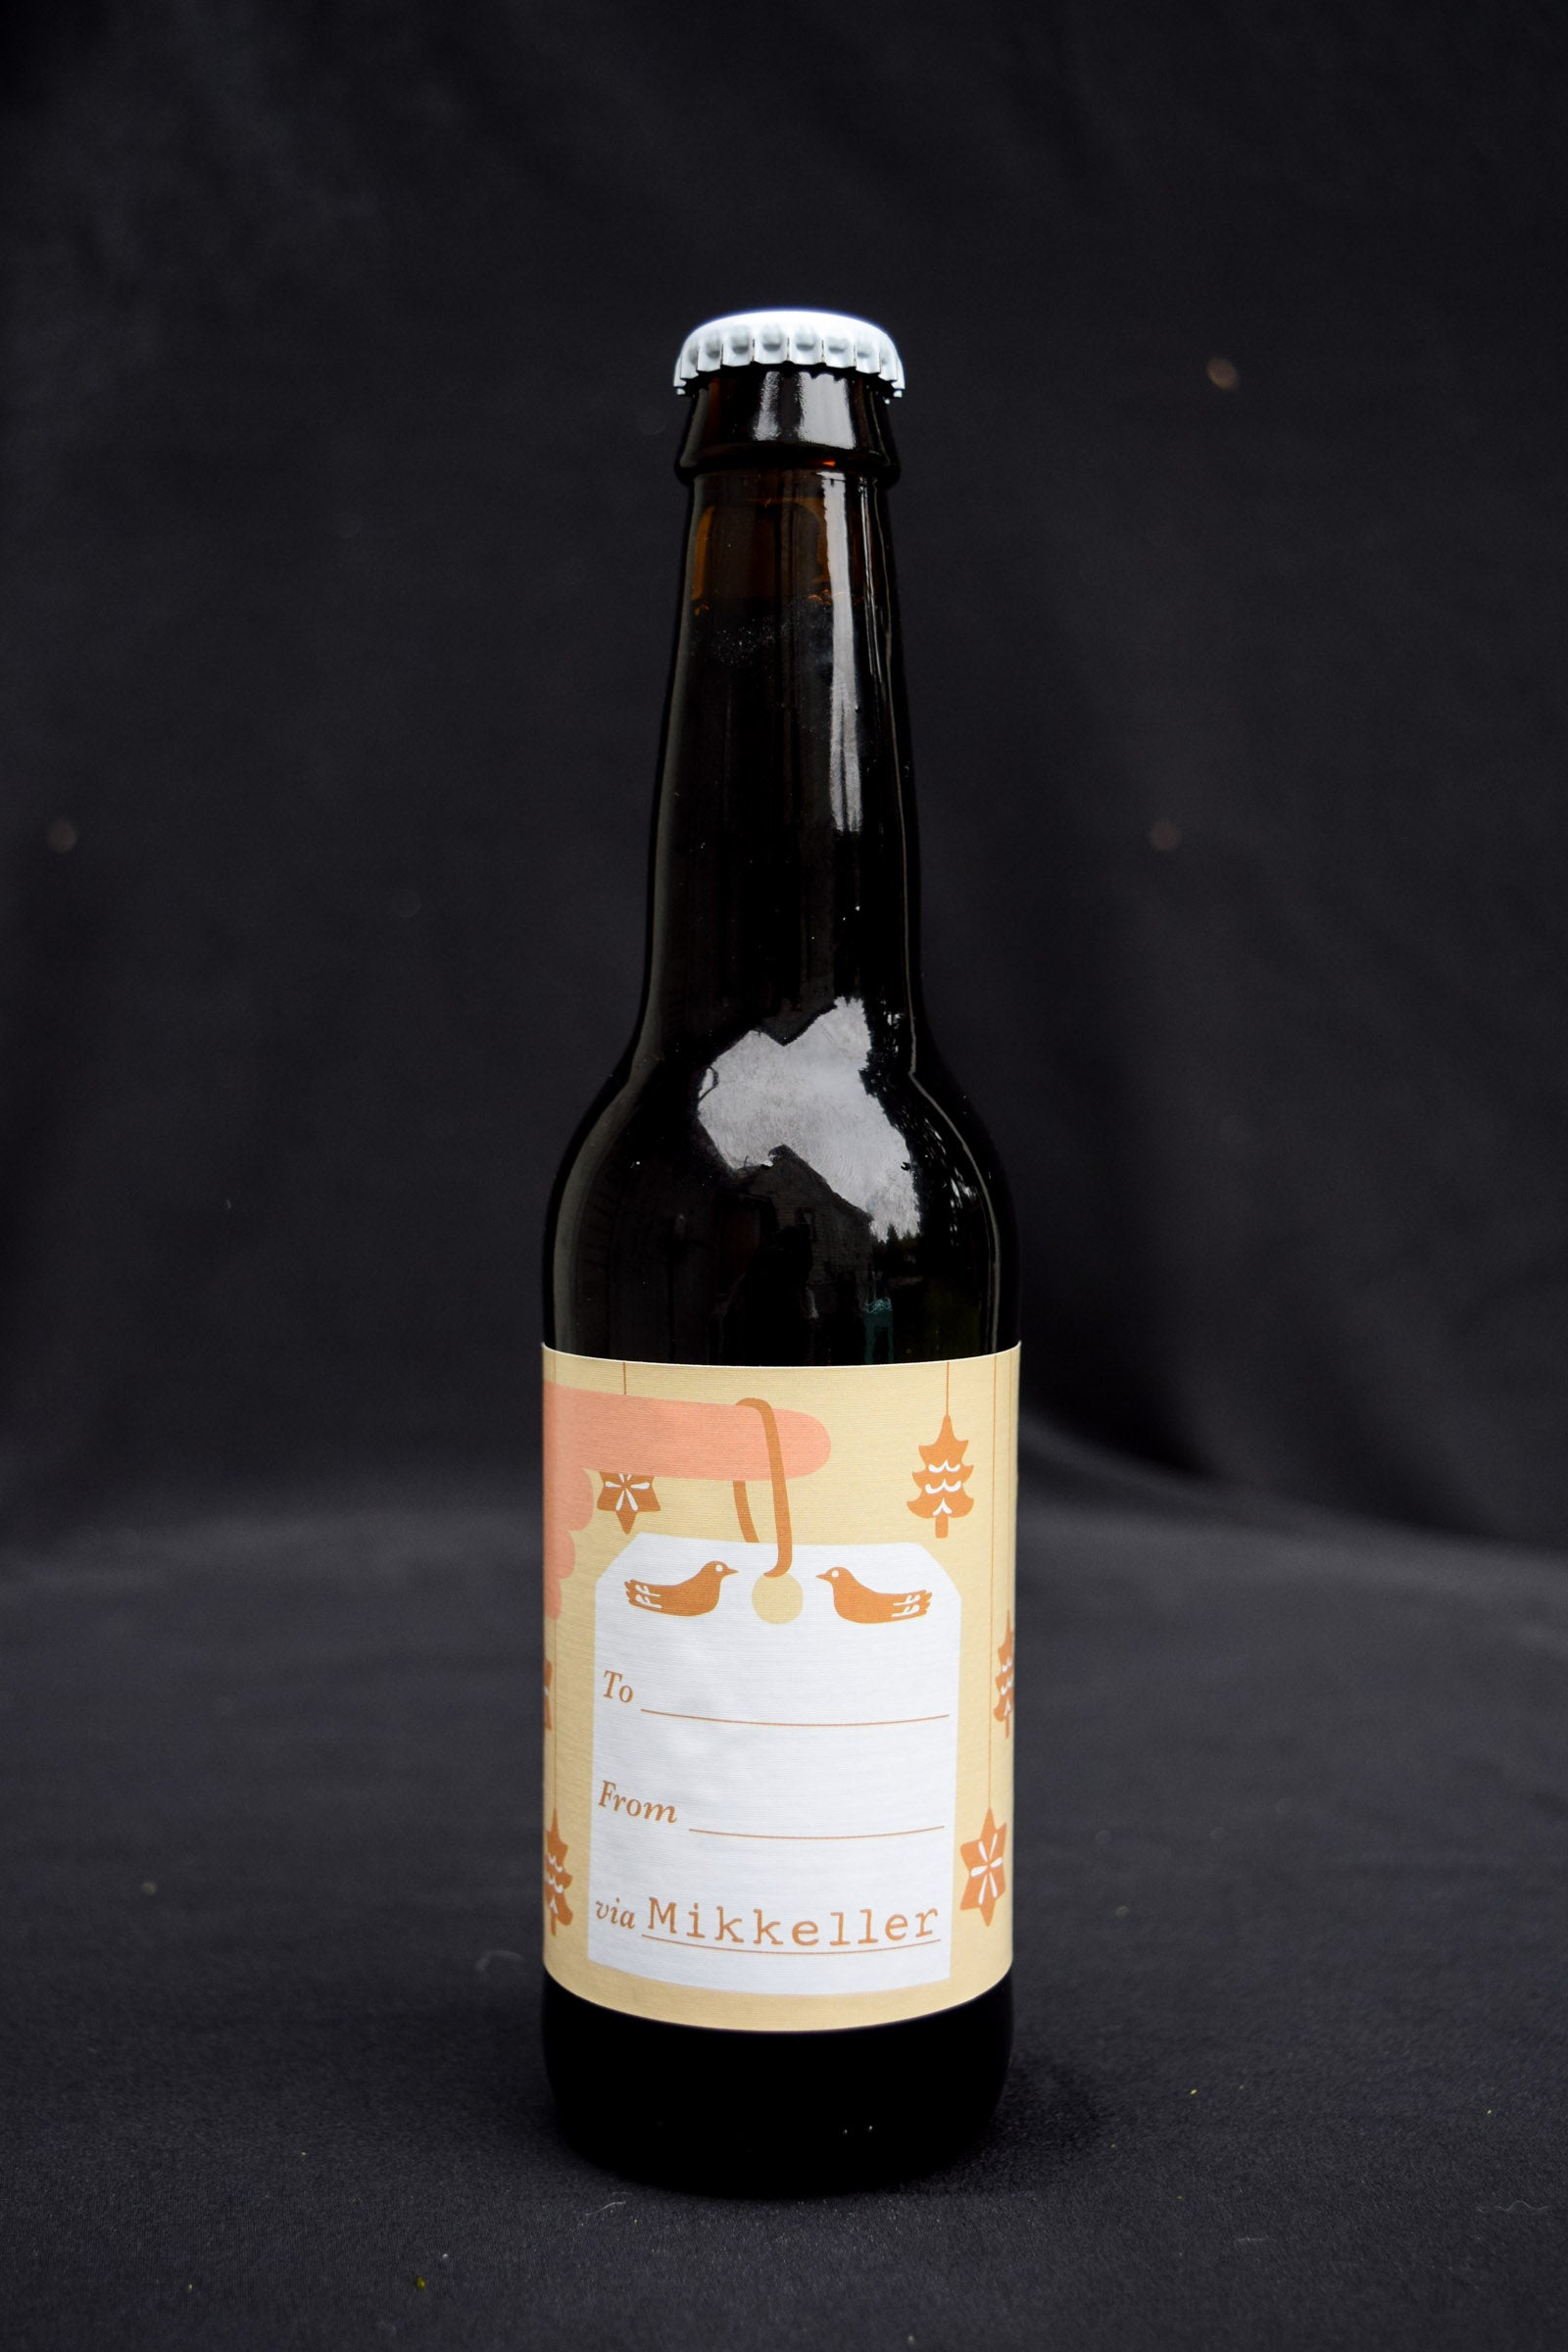 Buy Mikkeller To From Via Spiced Porter Online